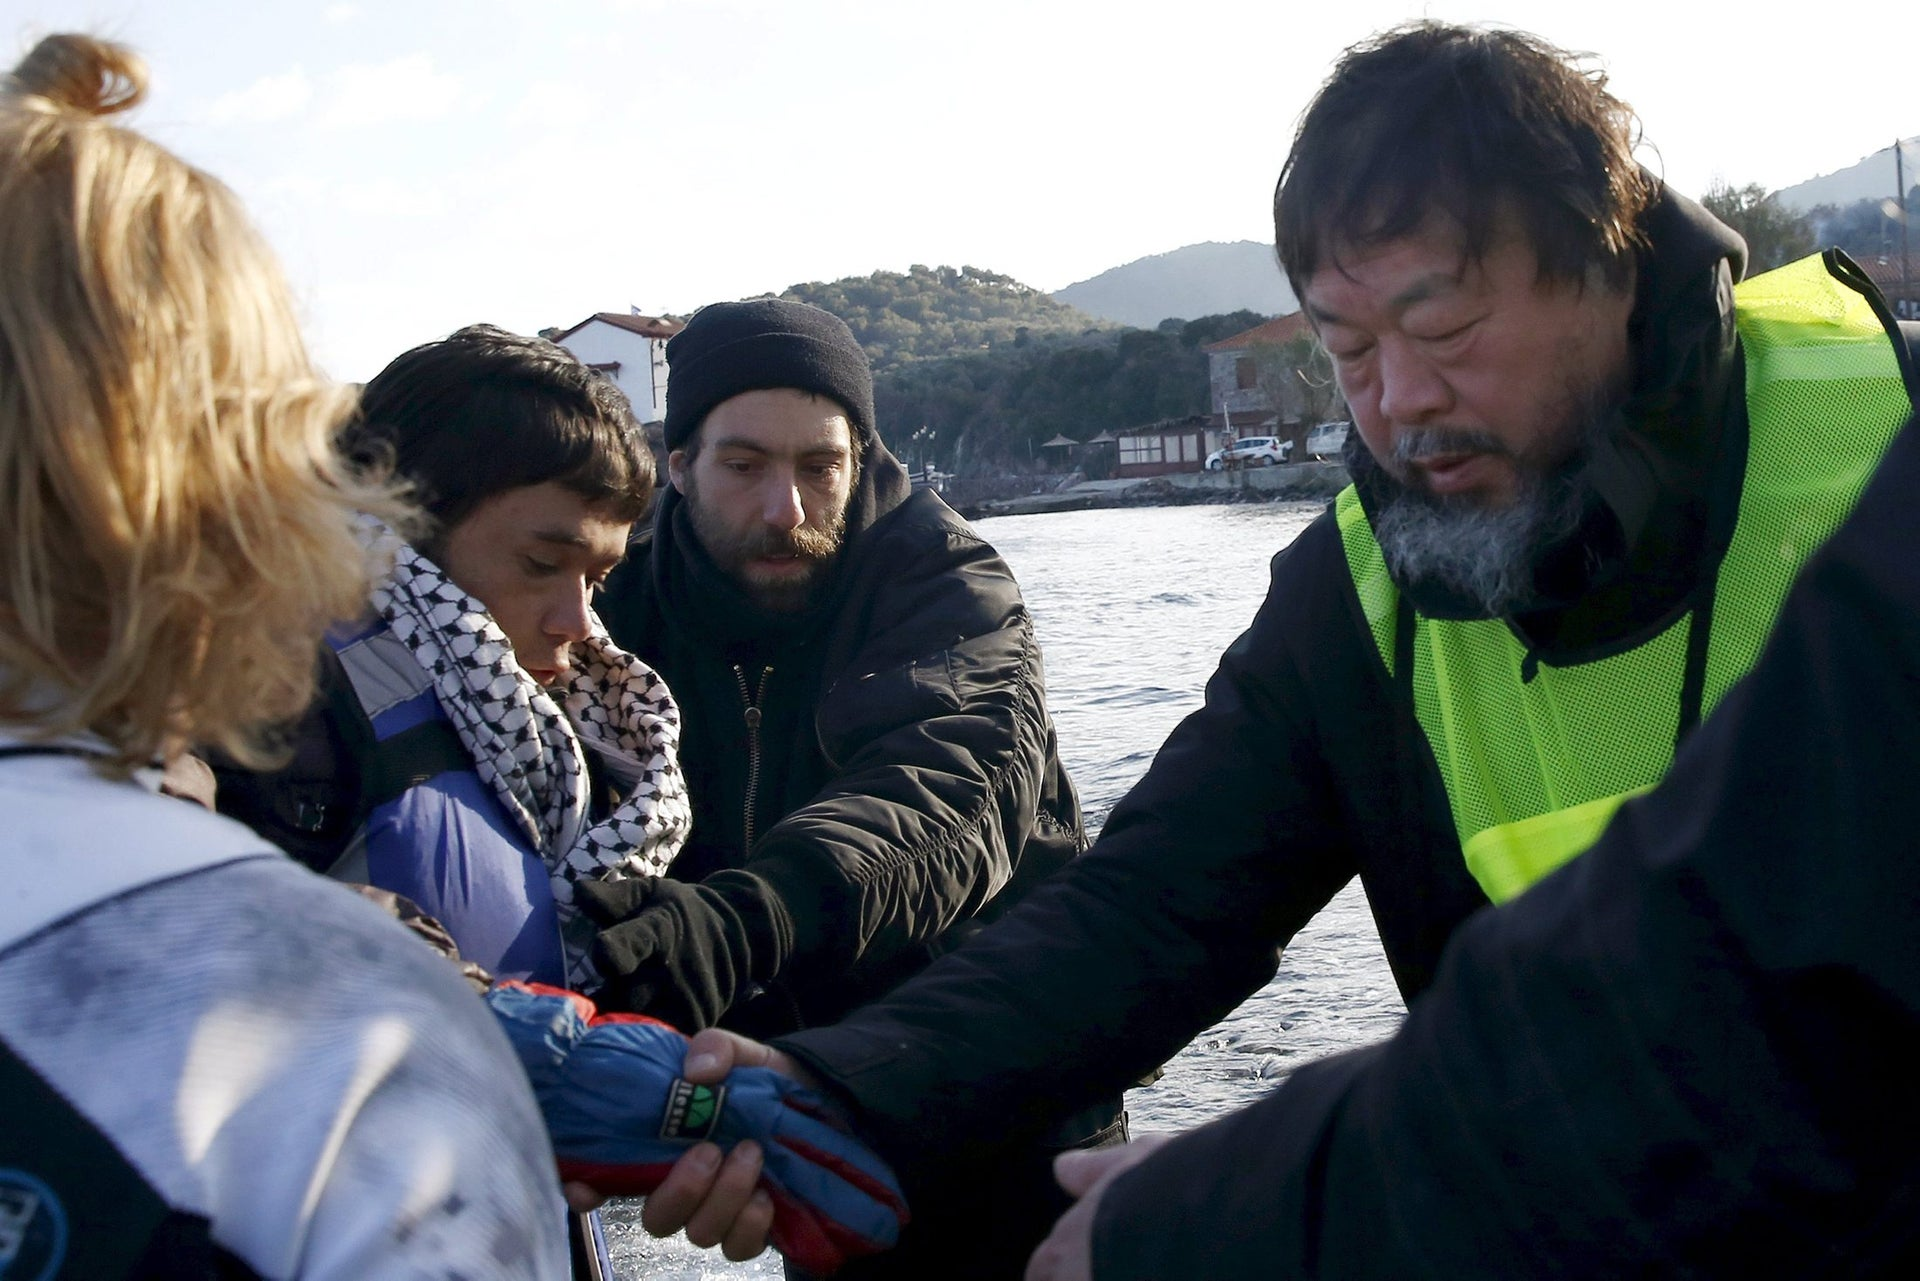 Chinese artist Ai Weiwei (R) helps an Afghan migrant as he arrives with other refugees and migrants on a raft on the Greek island of Lesbos, January 25, 2016.